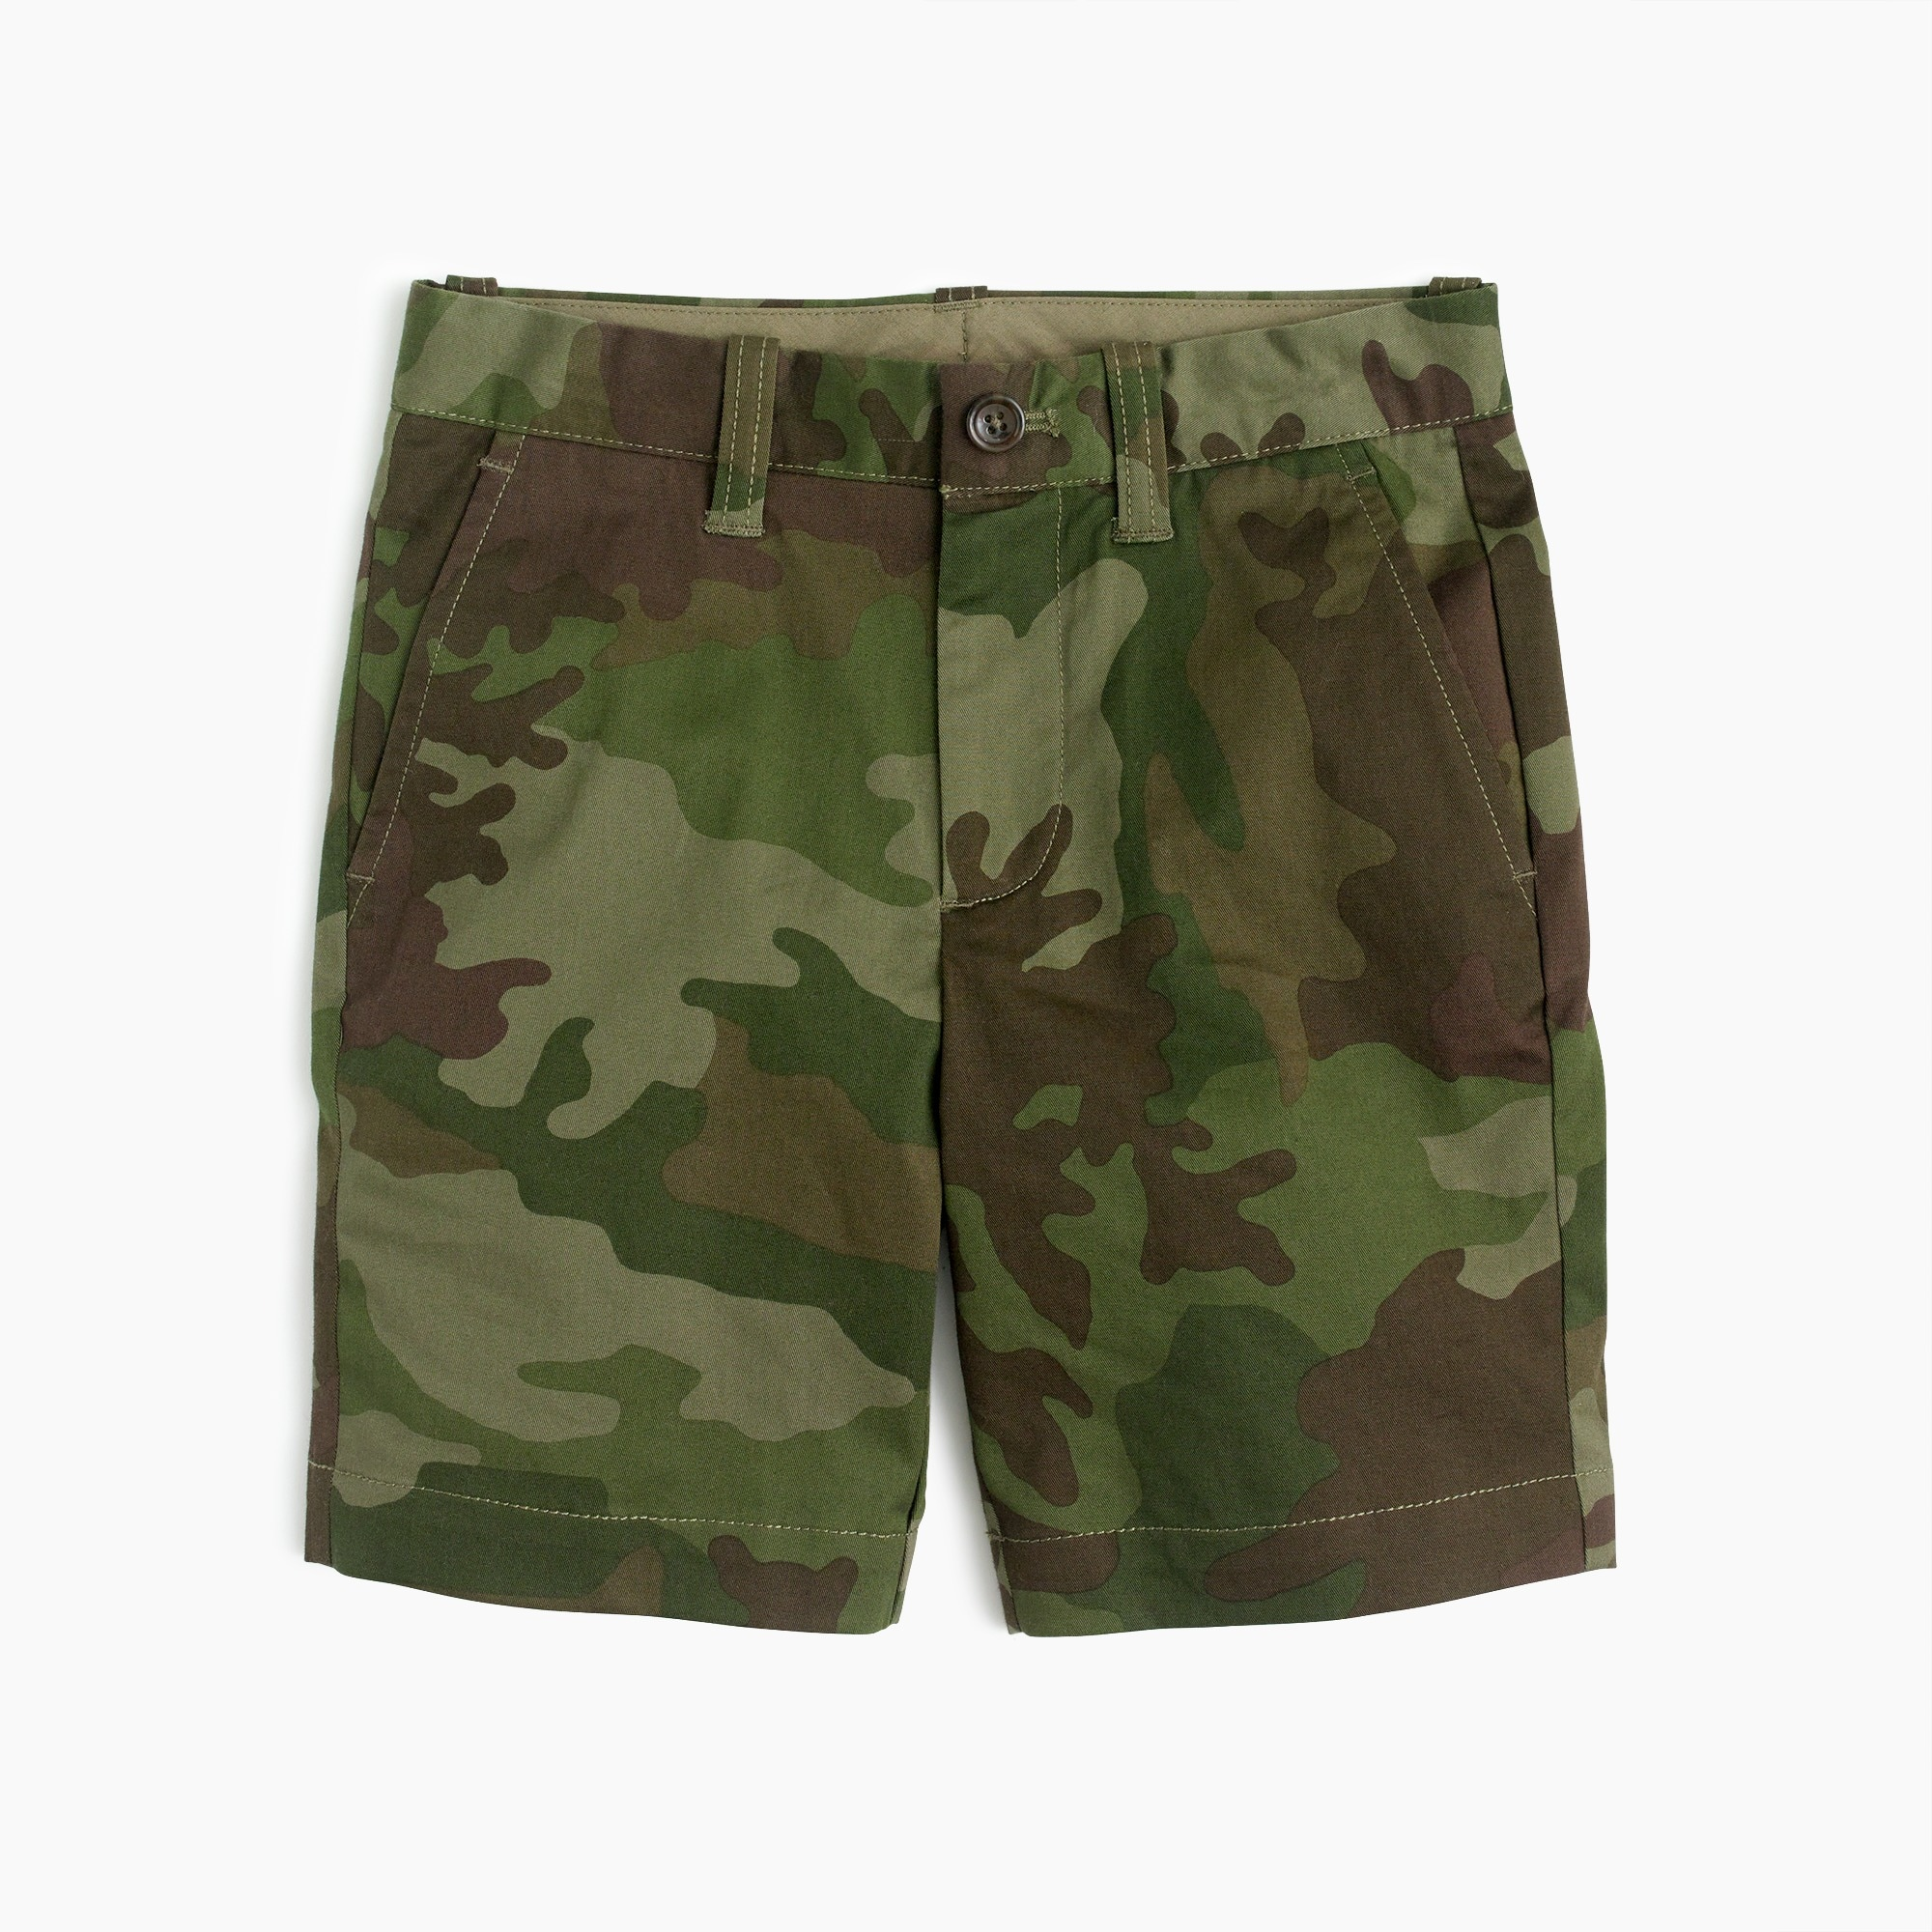 Boys' stretch Stanton short in camo